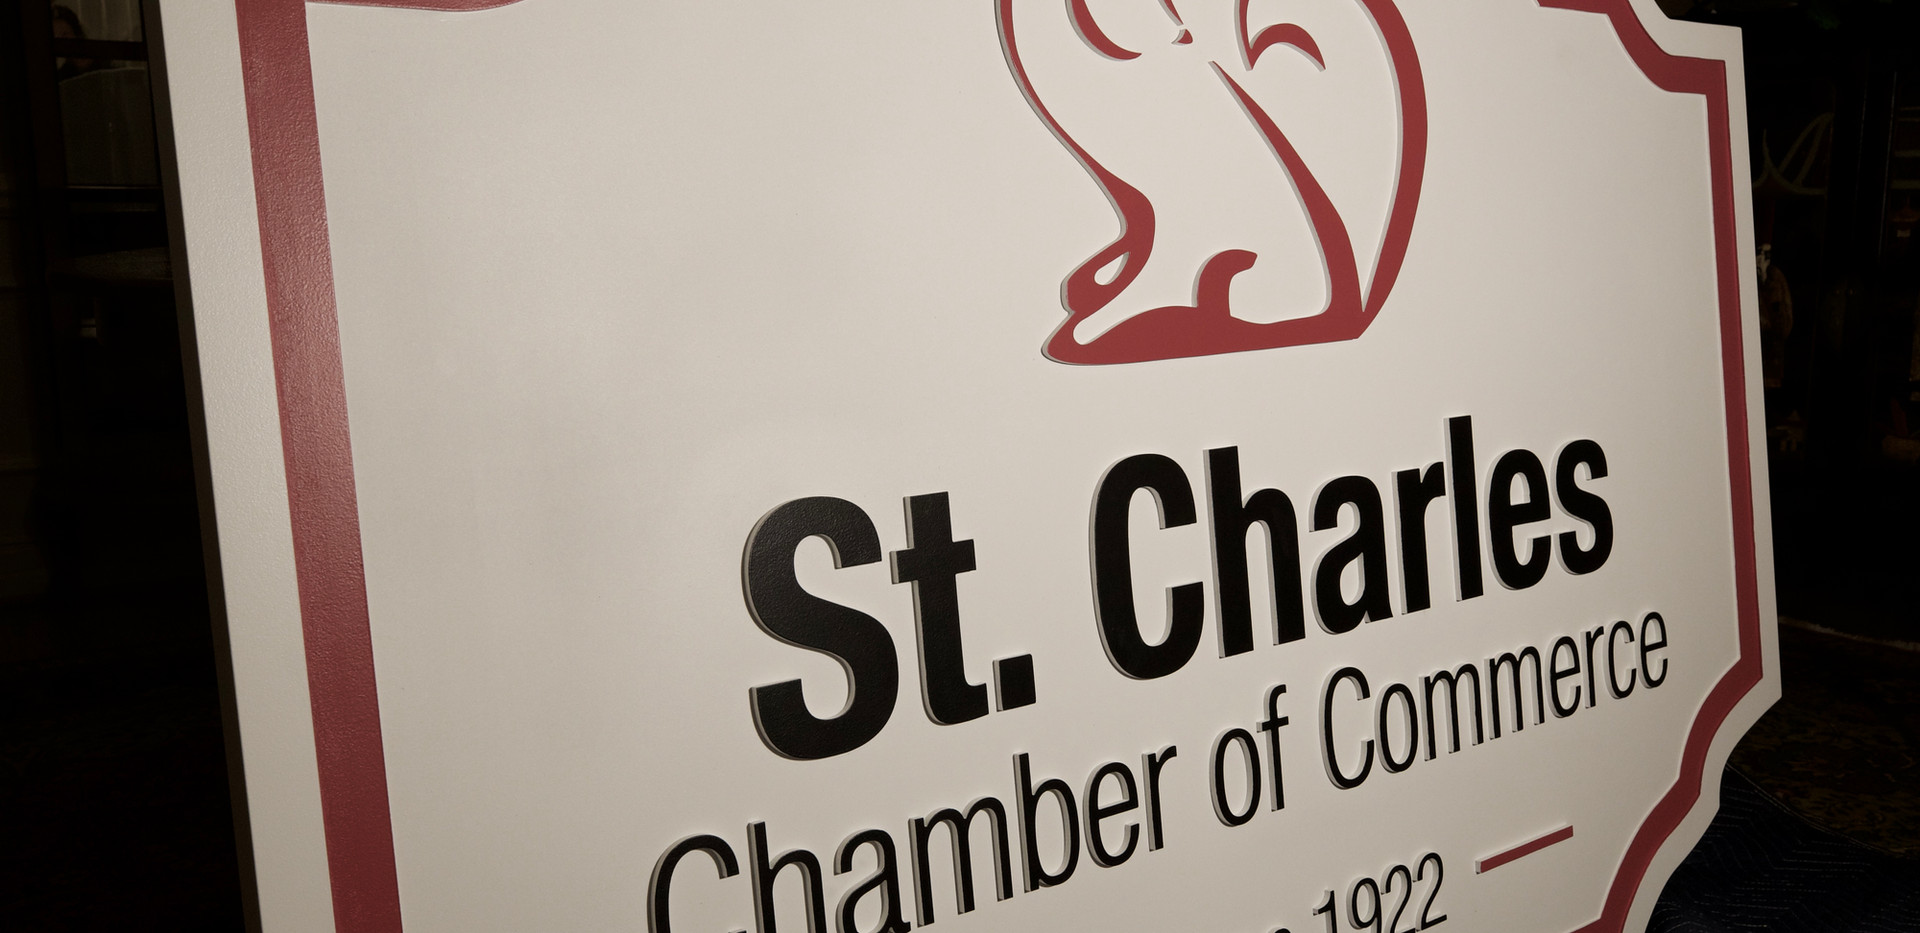 St. Charles Chamber of Commerce, St. Charles, IL